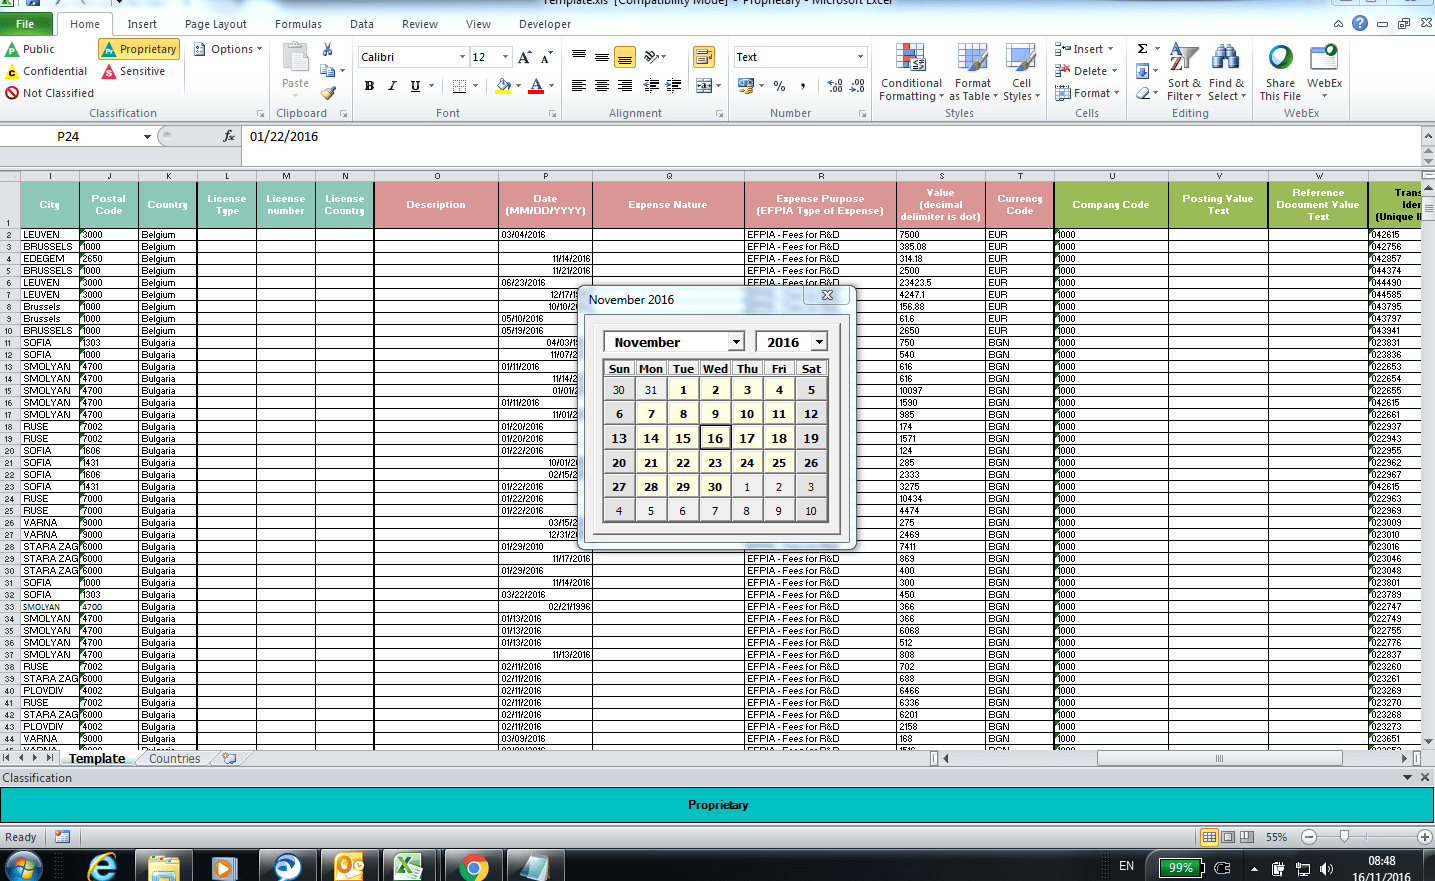 Unhide Worksheet Vba Code